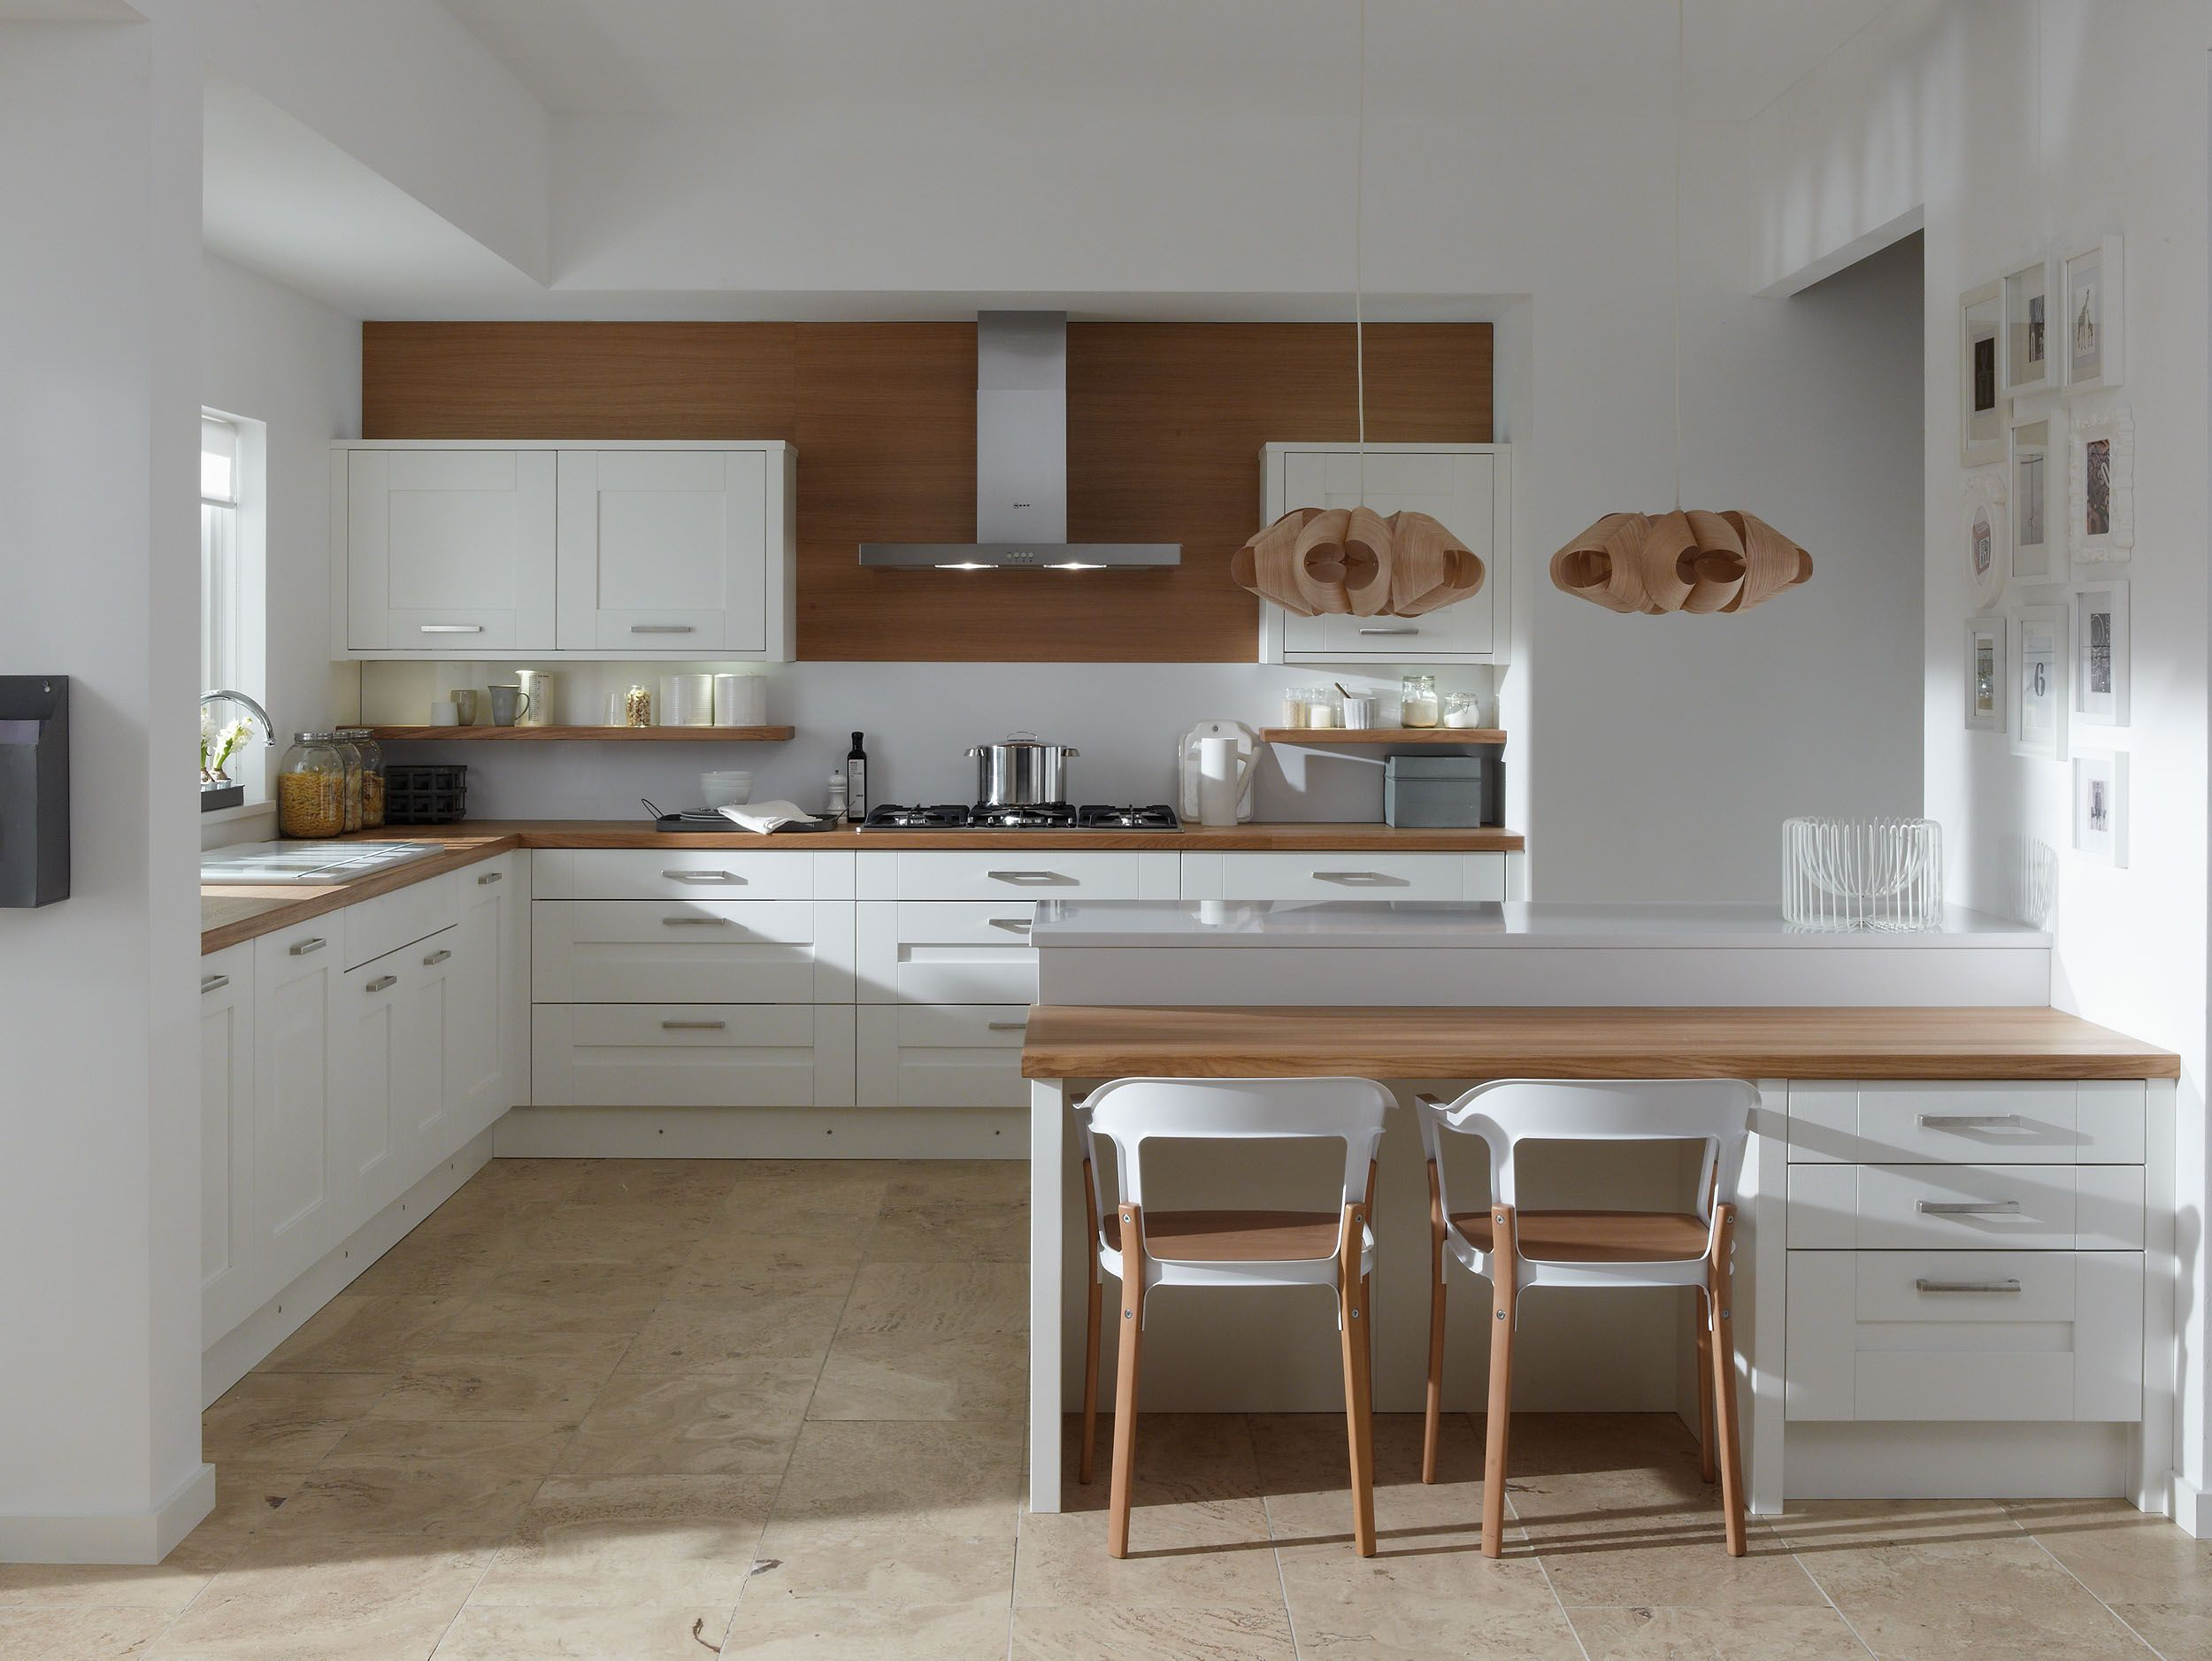 kitchen cabinet layout 5 Things to Do Before Starting A Kitchen Design Project